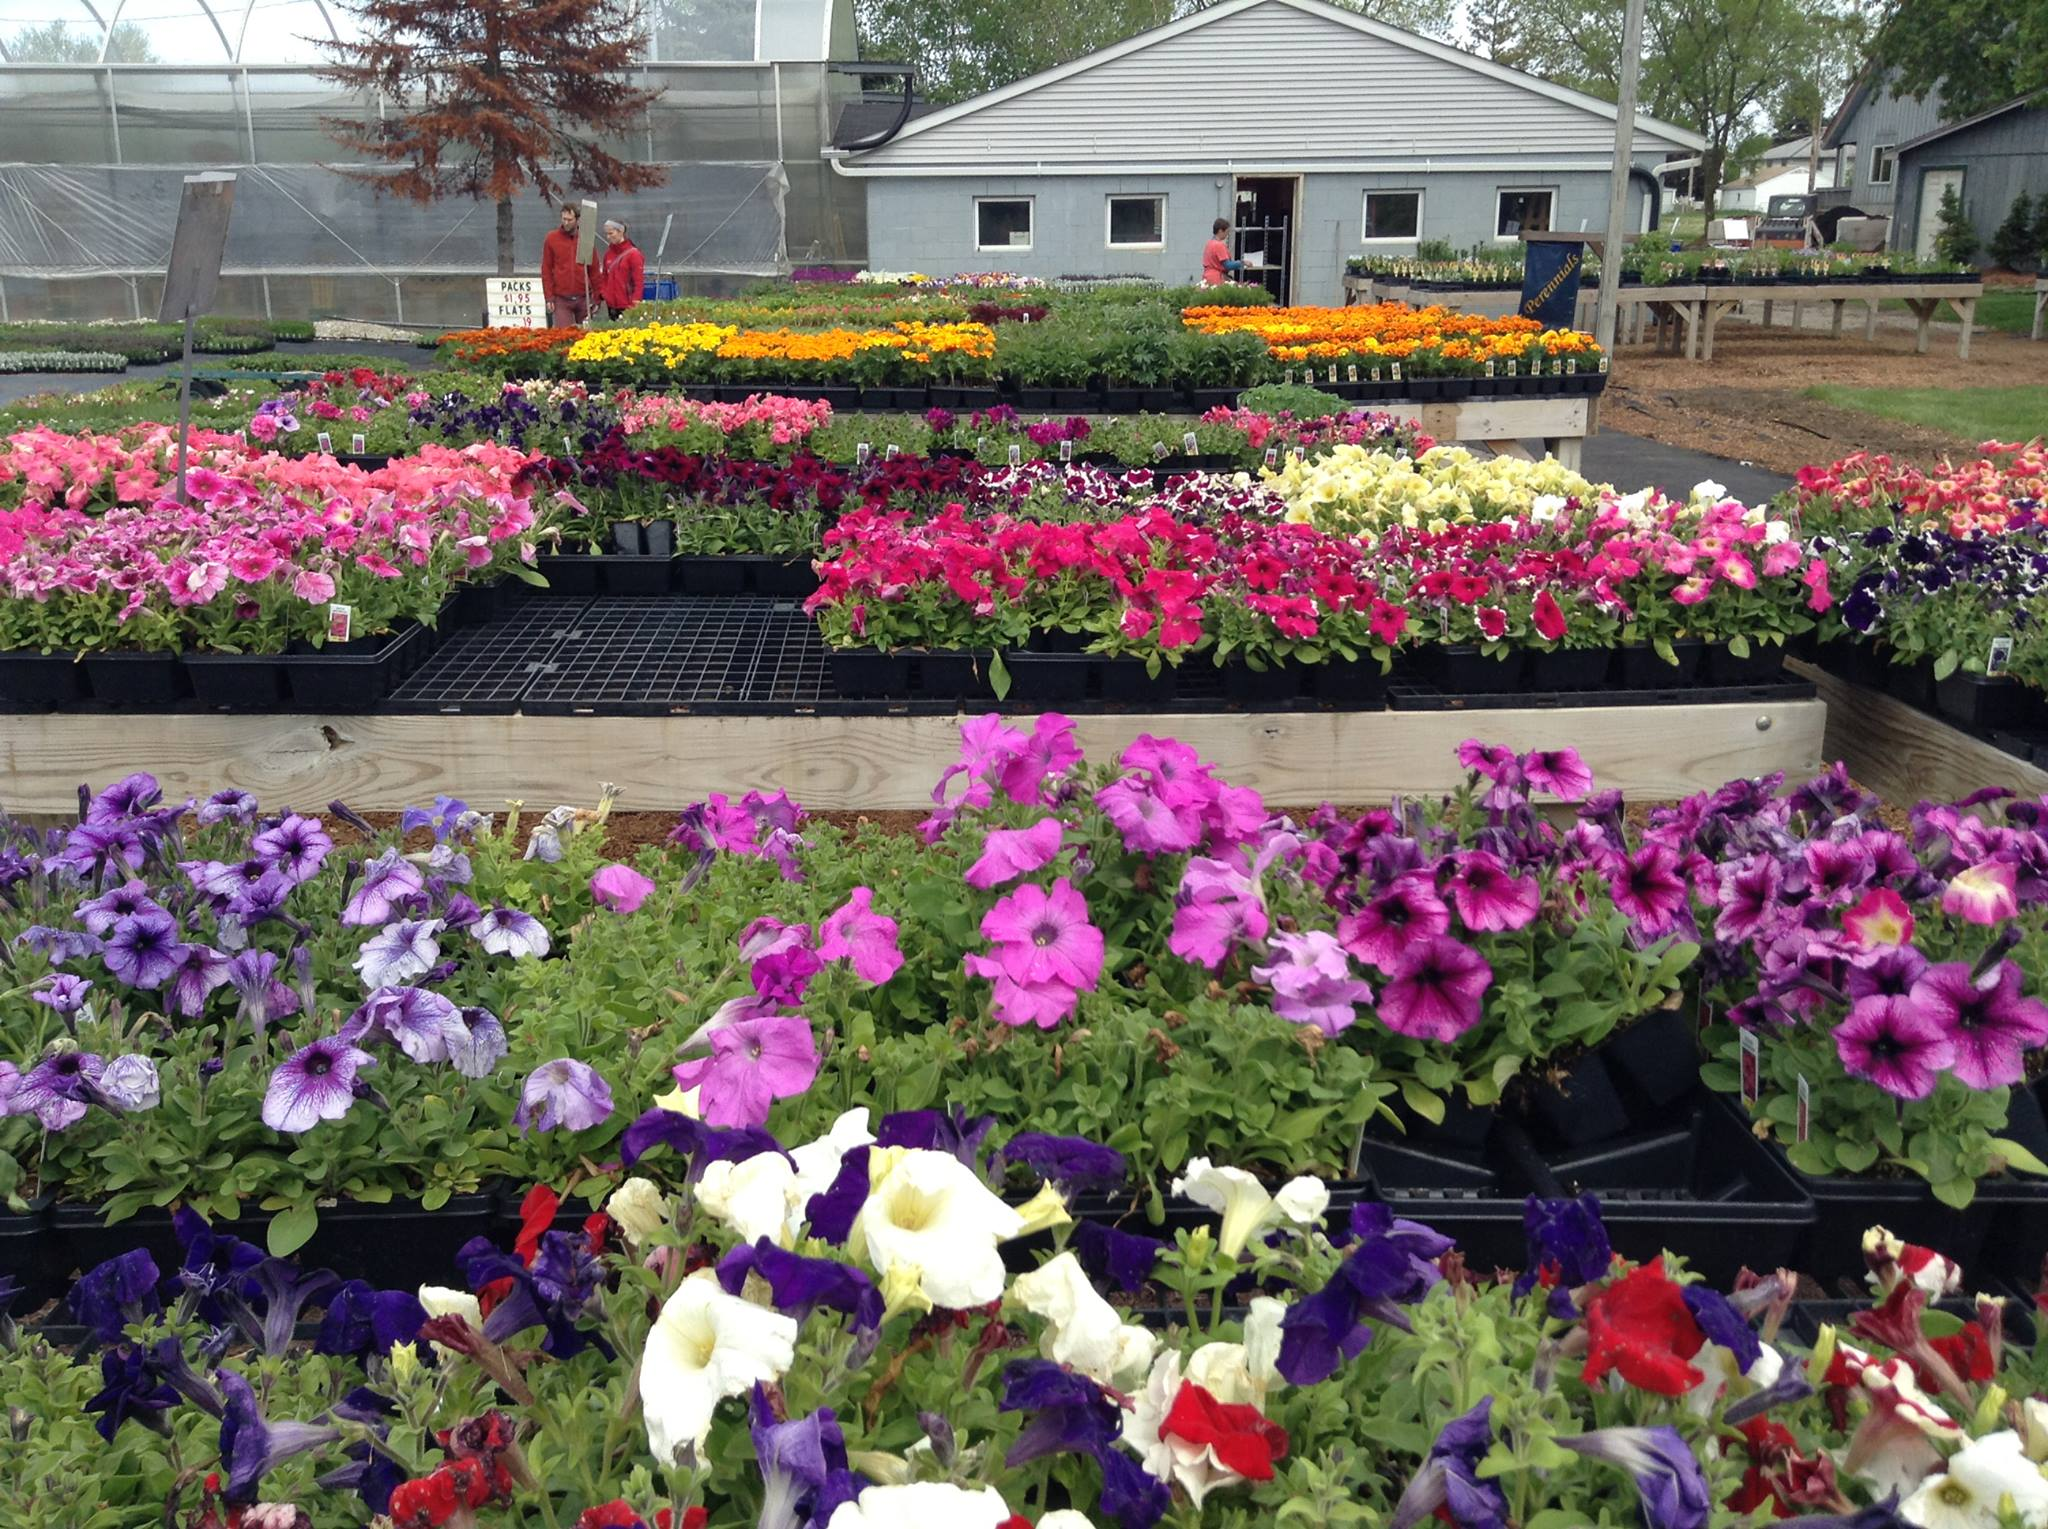 Outside of Custom Grown Greenhouse and Garden Center with many plants and flowers